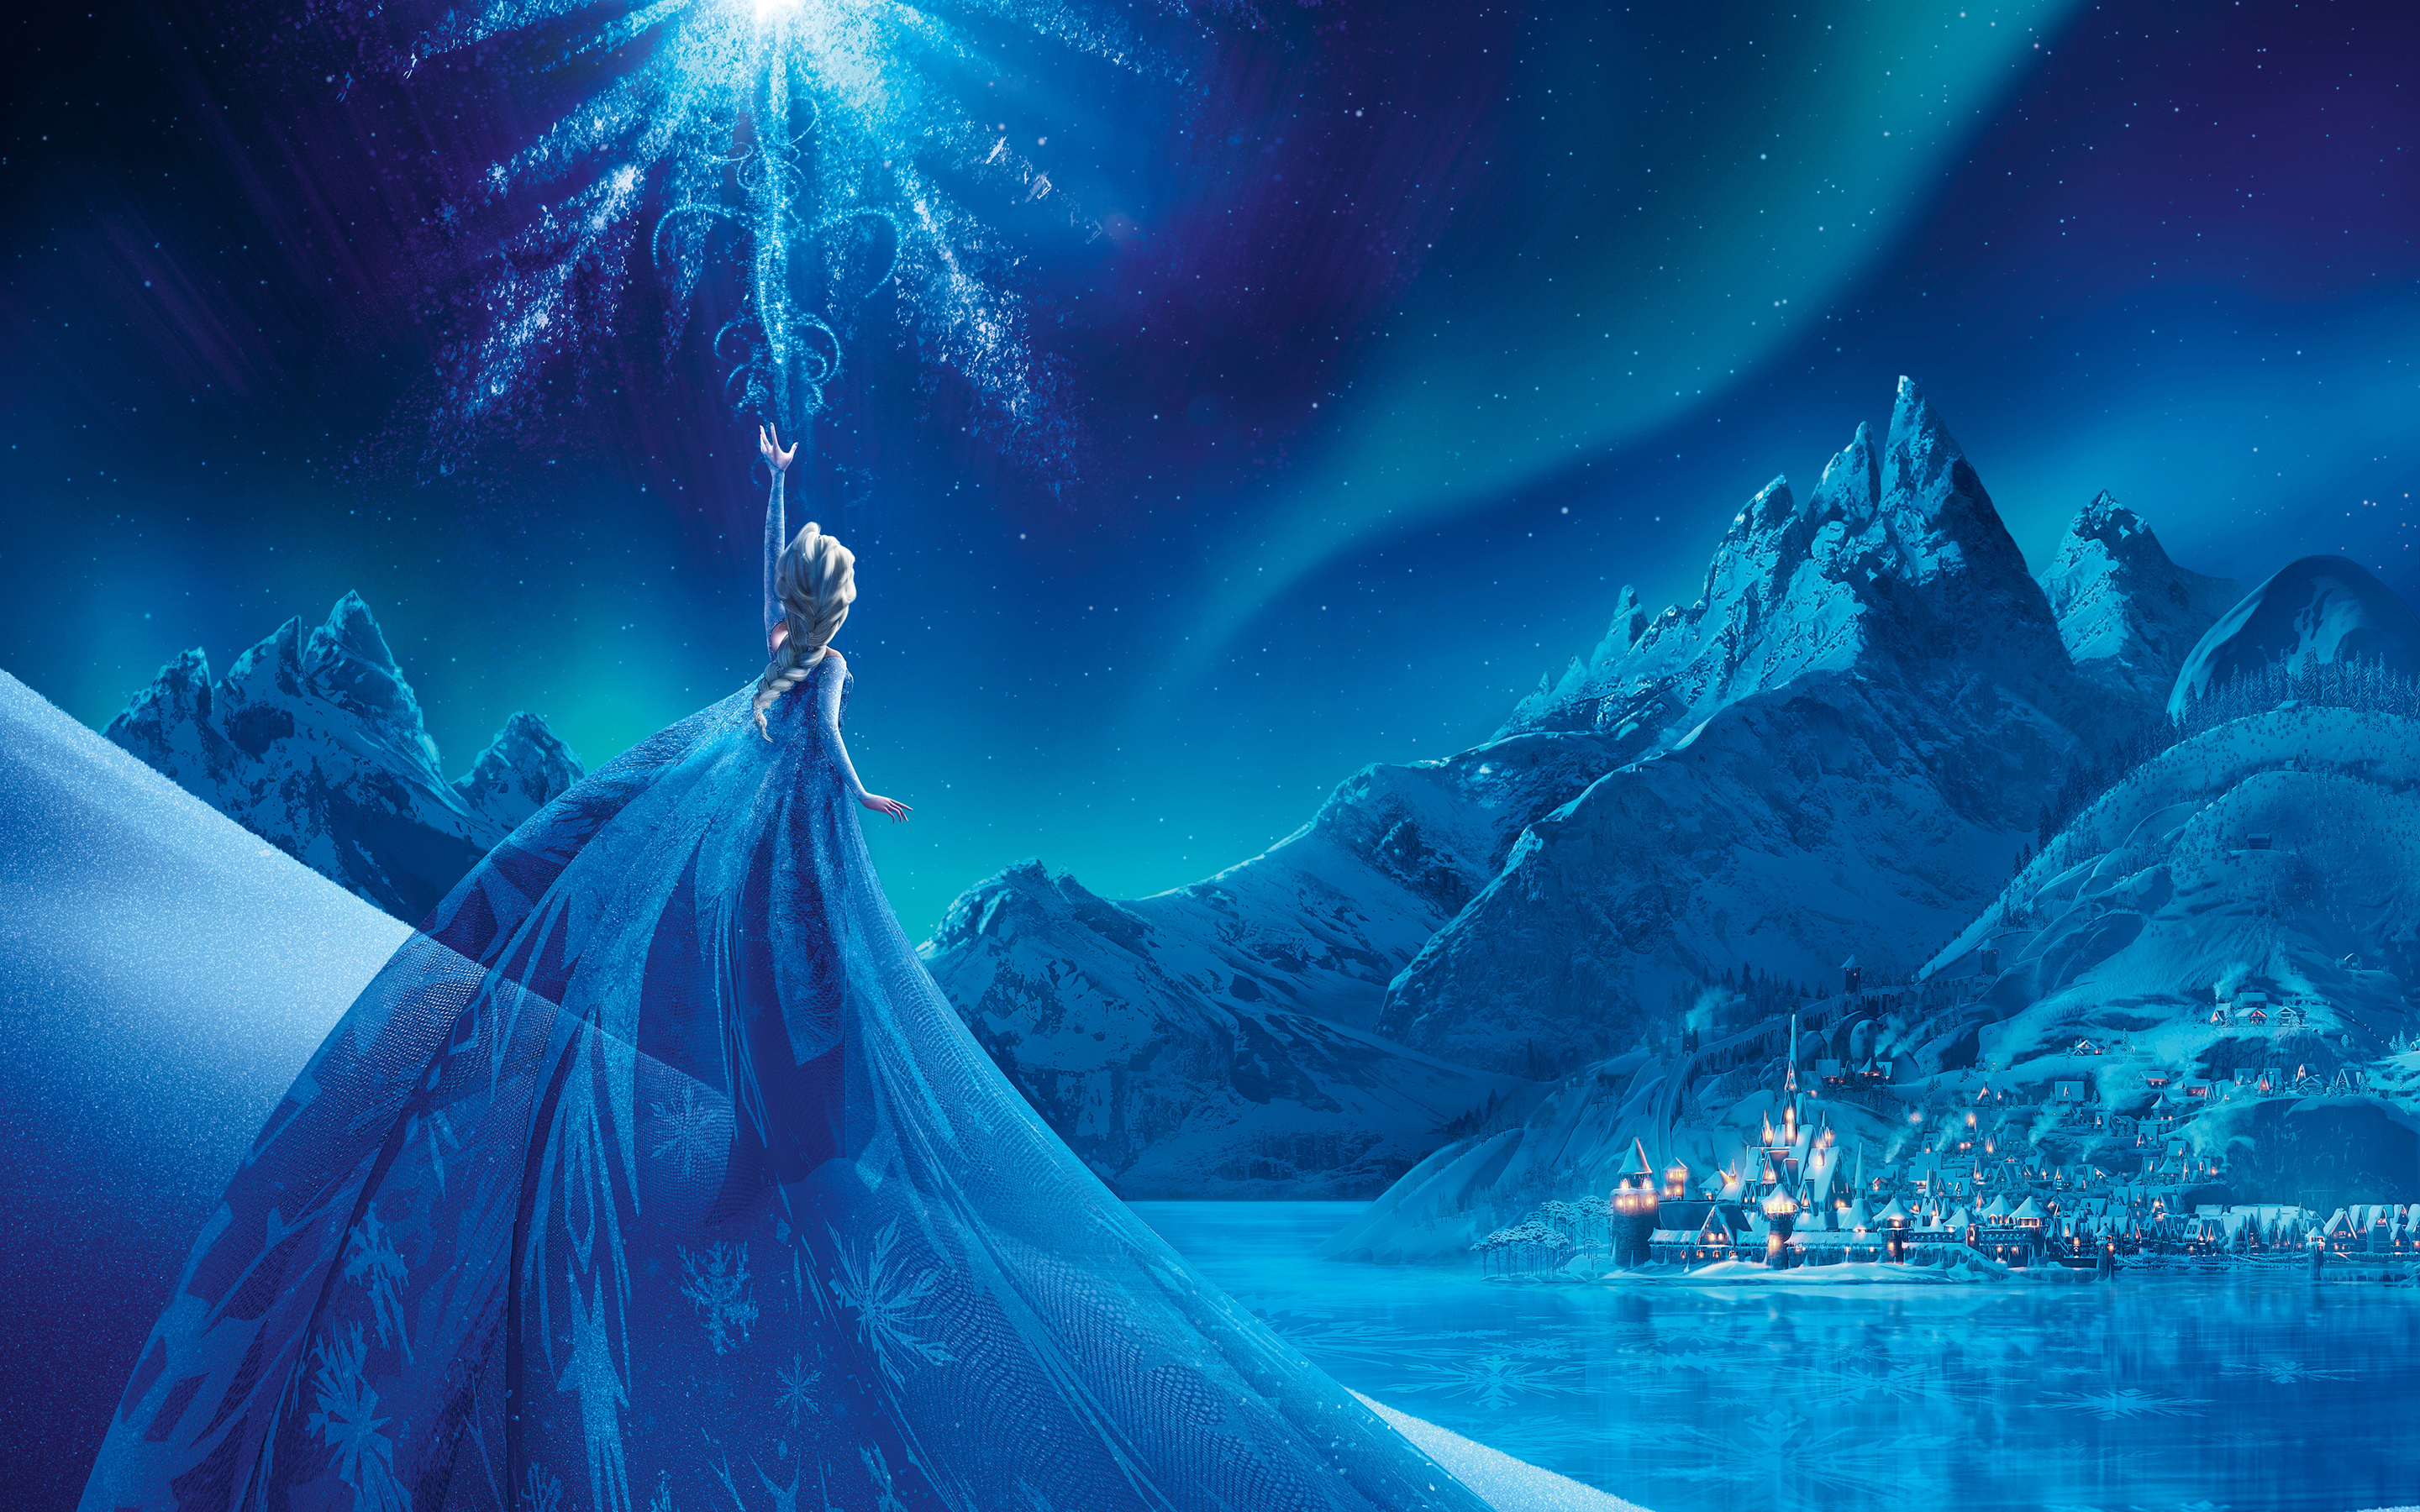 Frozen Elsa Snow Queen Palace Wallpapers HD Wallpapers 2880x1800